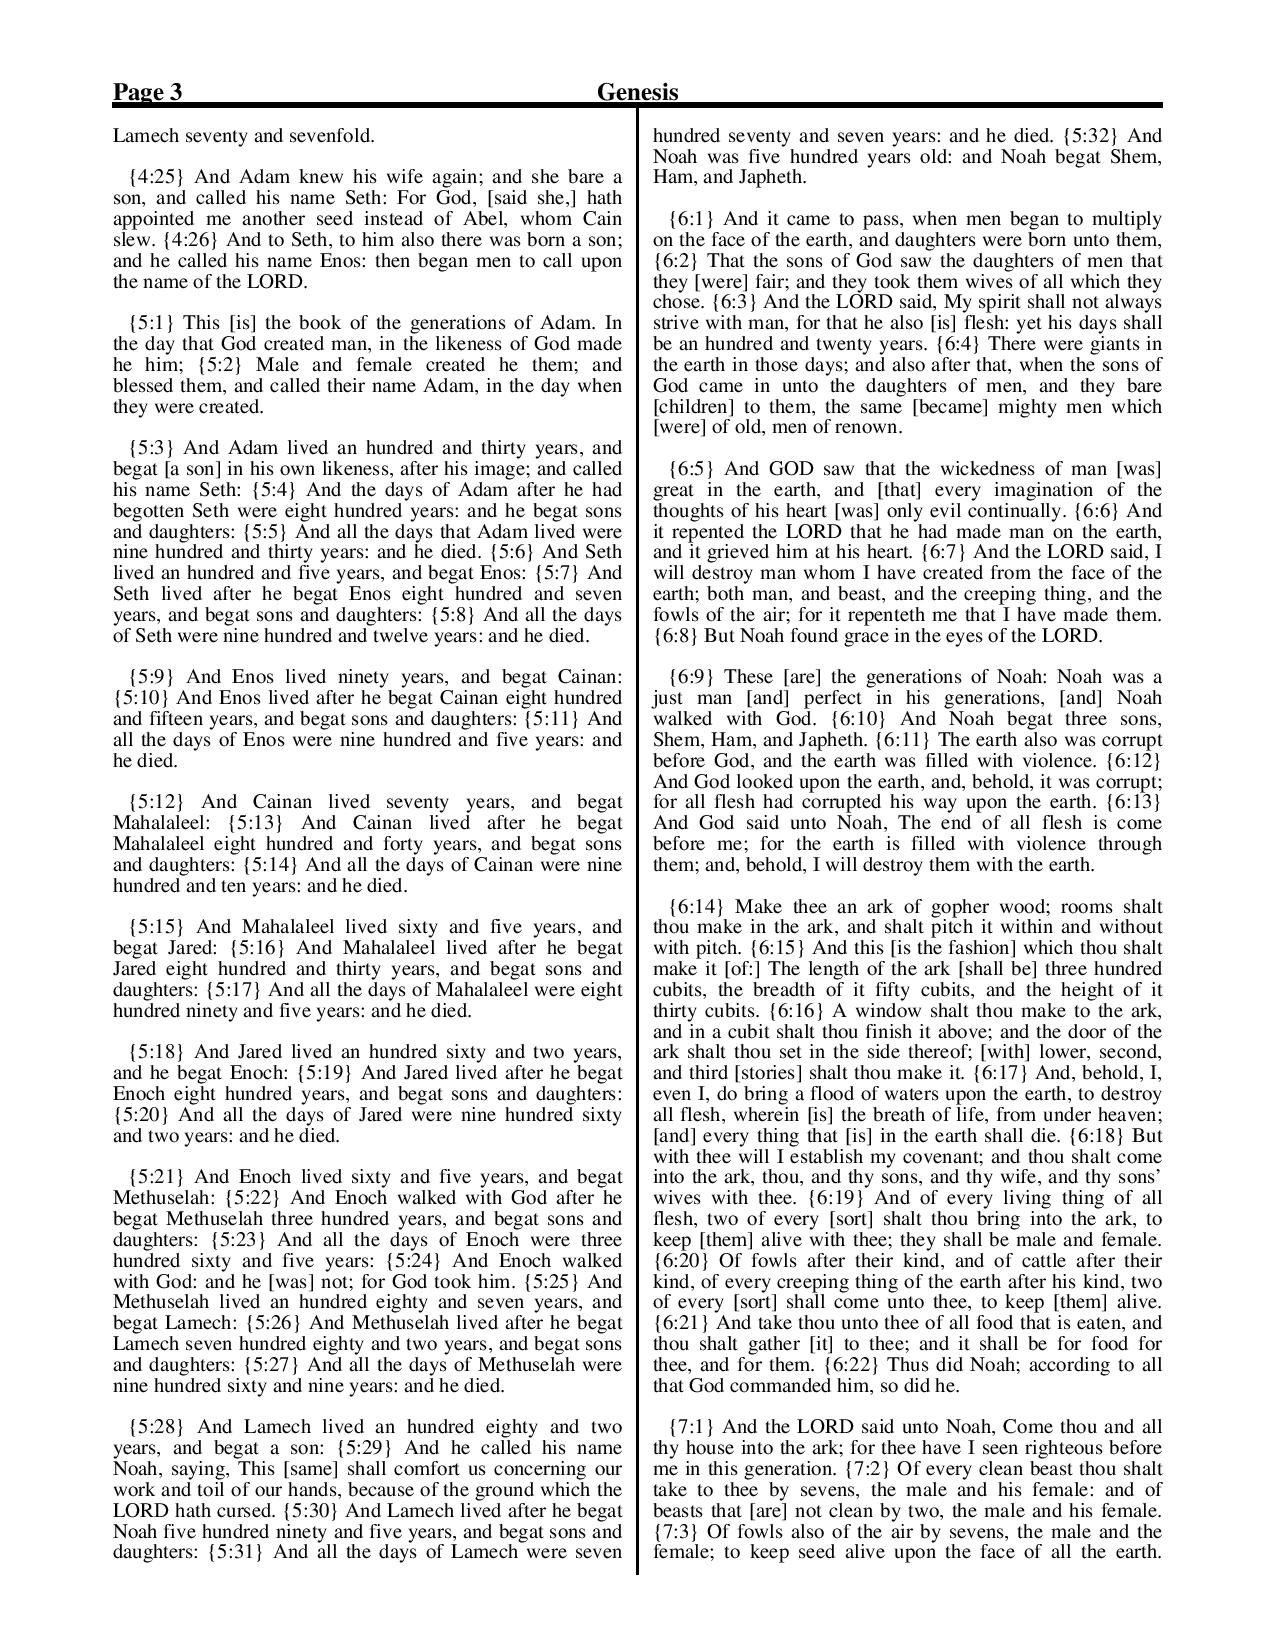 King-James-Bible-KJV-Bible-PDF-page-024